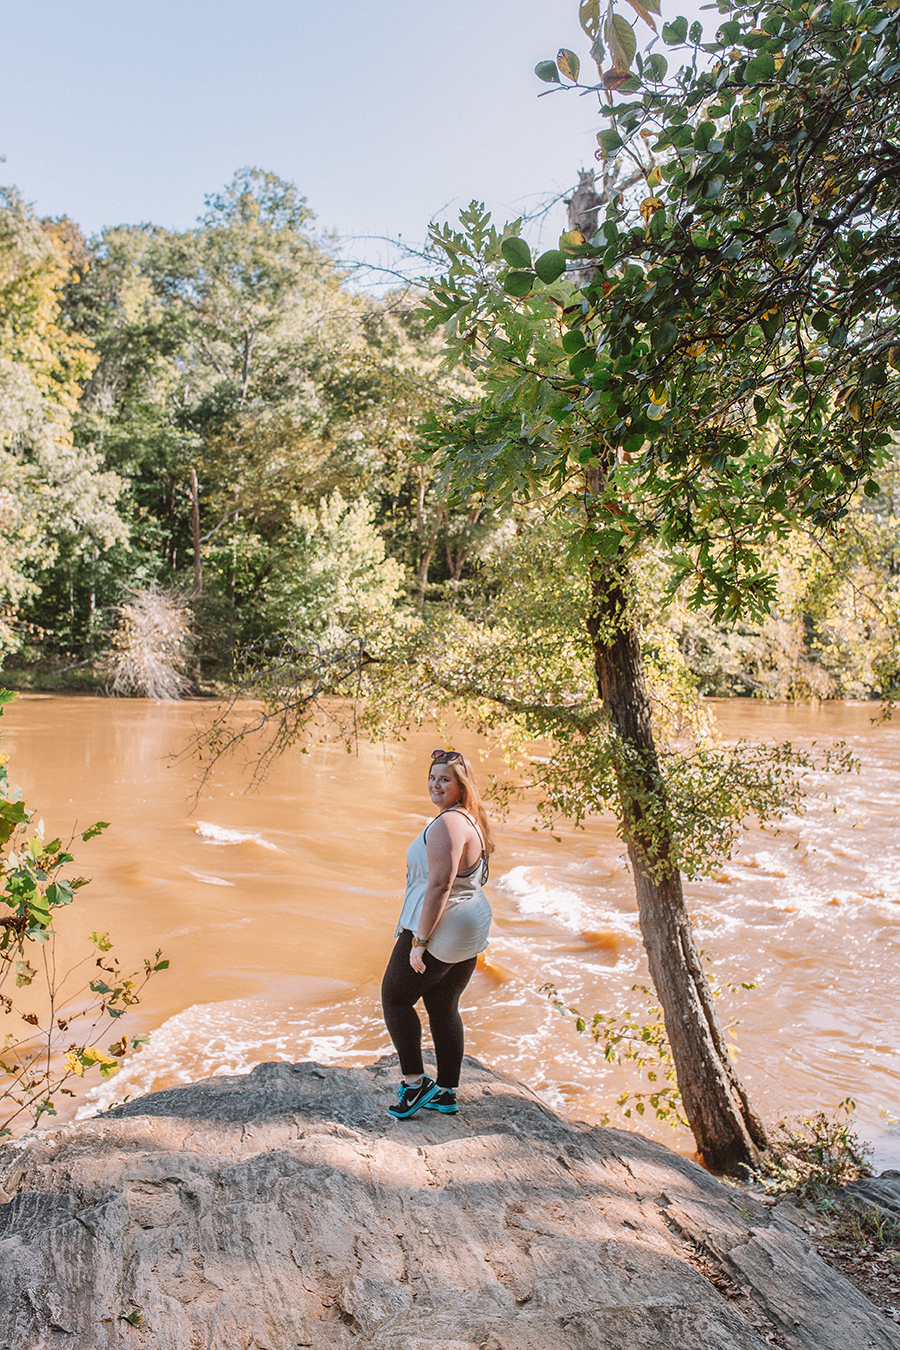 If you are a hiking enthusiast or you get spurts of energy to do spontaneous physical activity, consider a weekend getaway at Sweetwater Creek State Park!